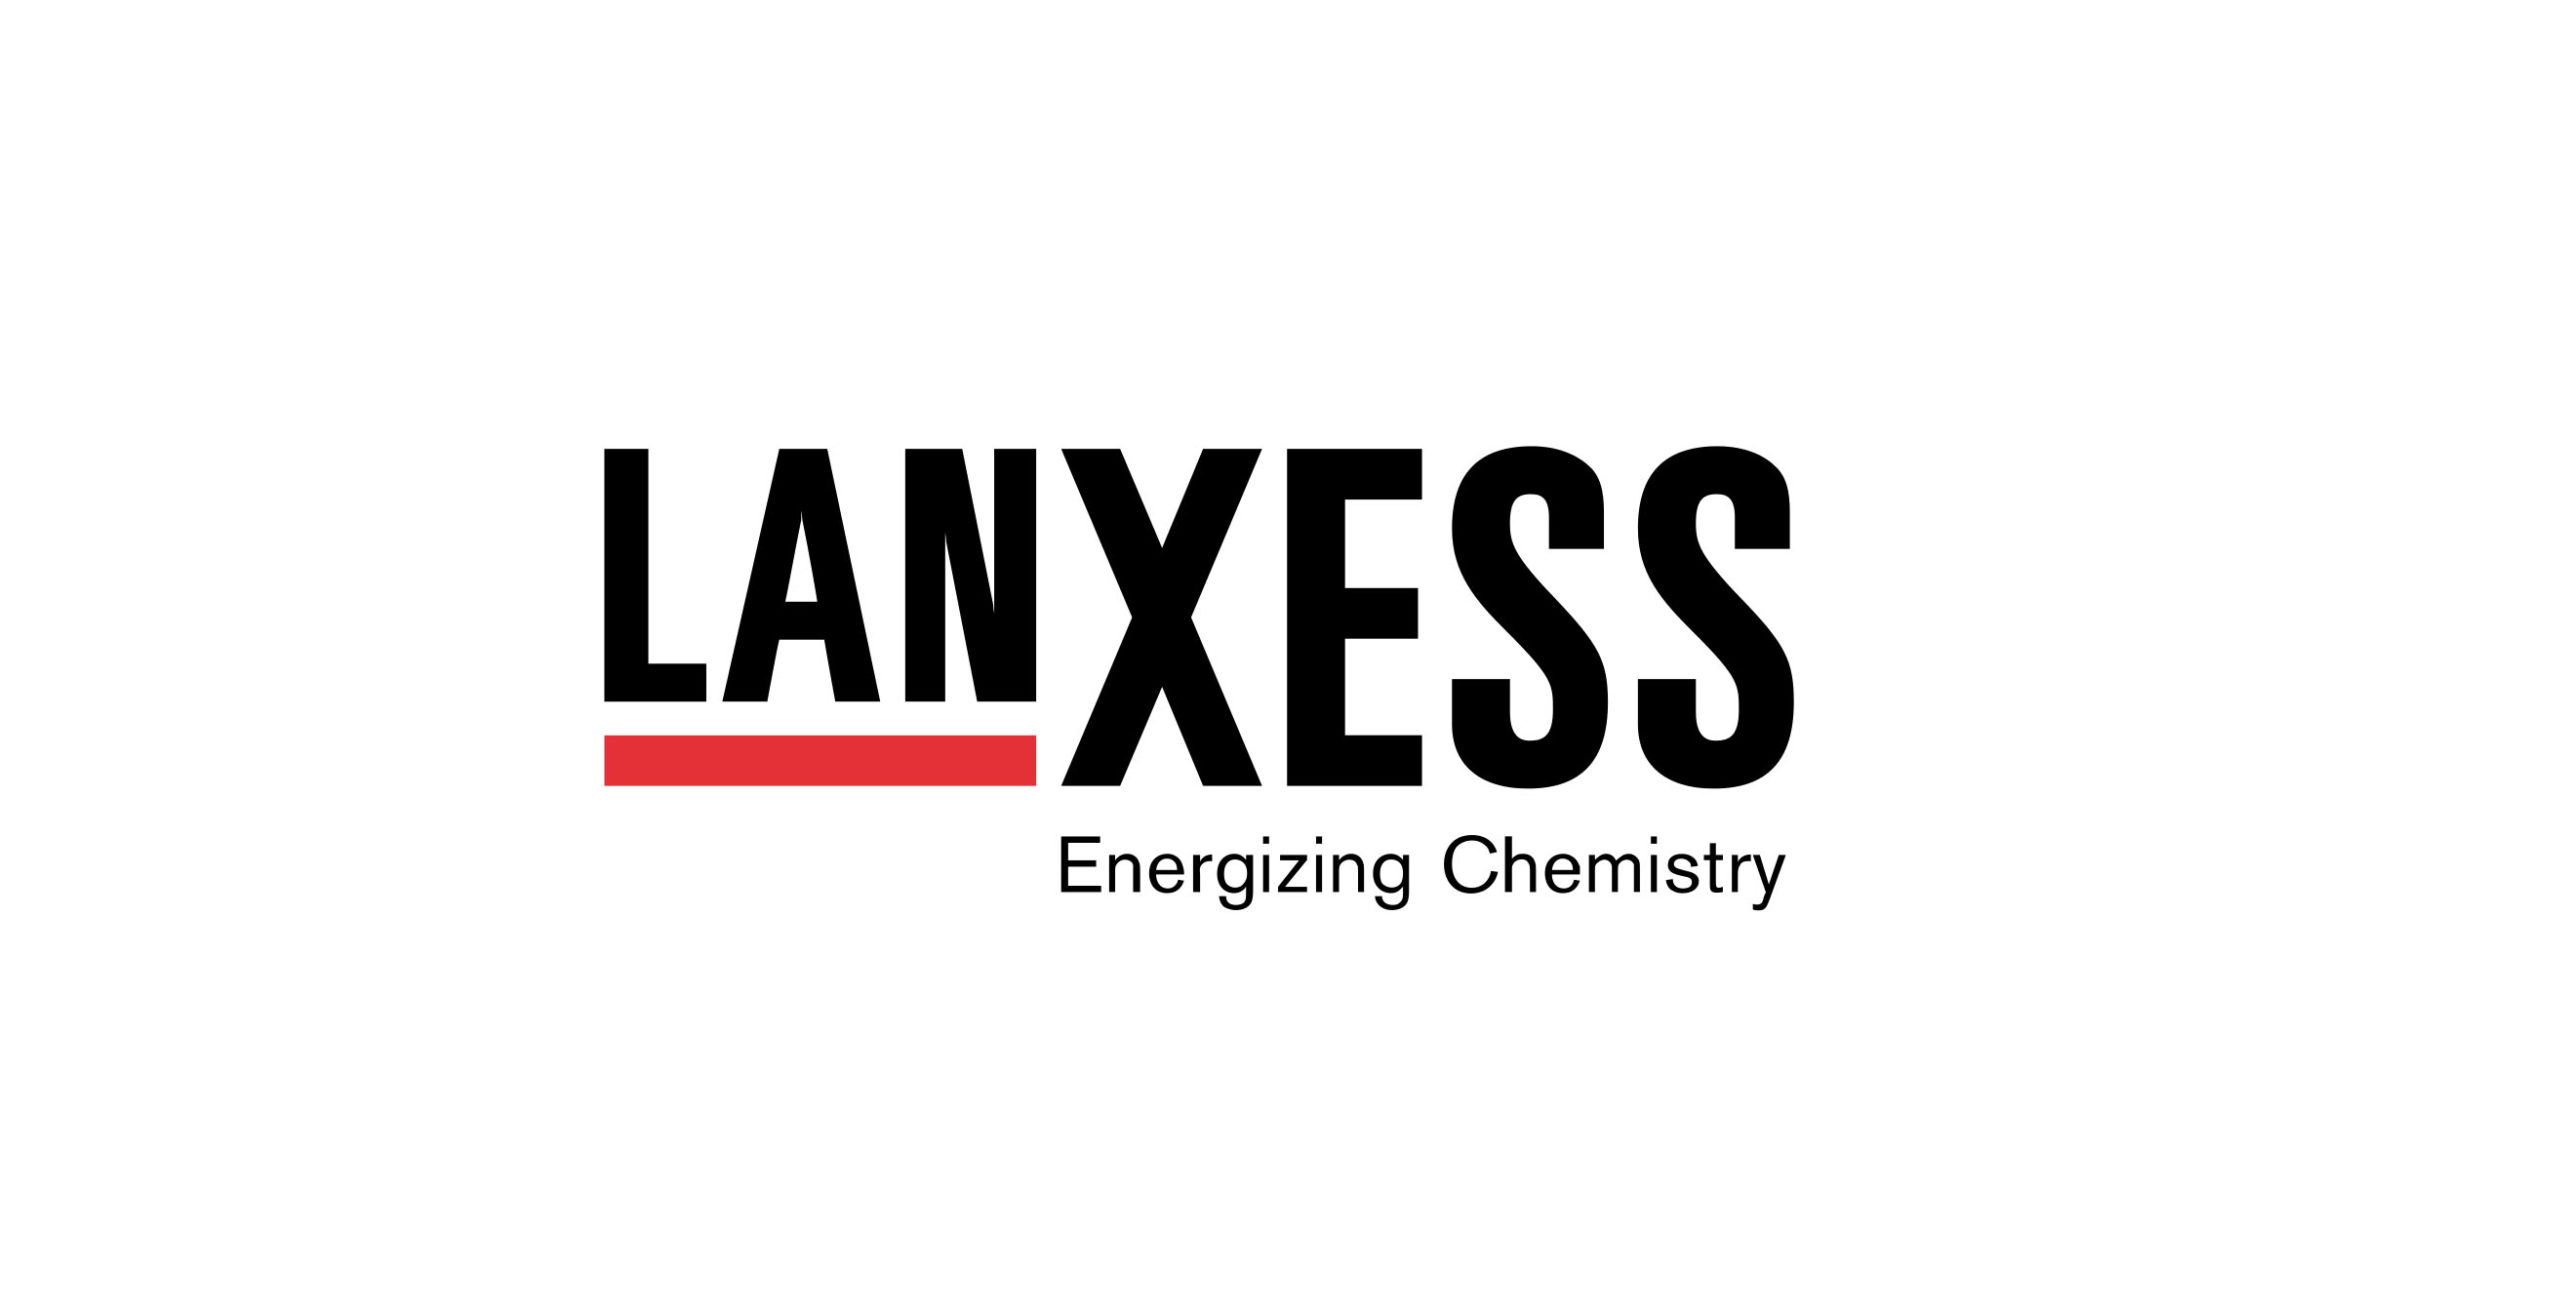 LANXESS expects earnings between EUR 900 million to EUR 1 billion in FY 2021